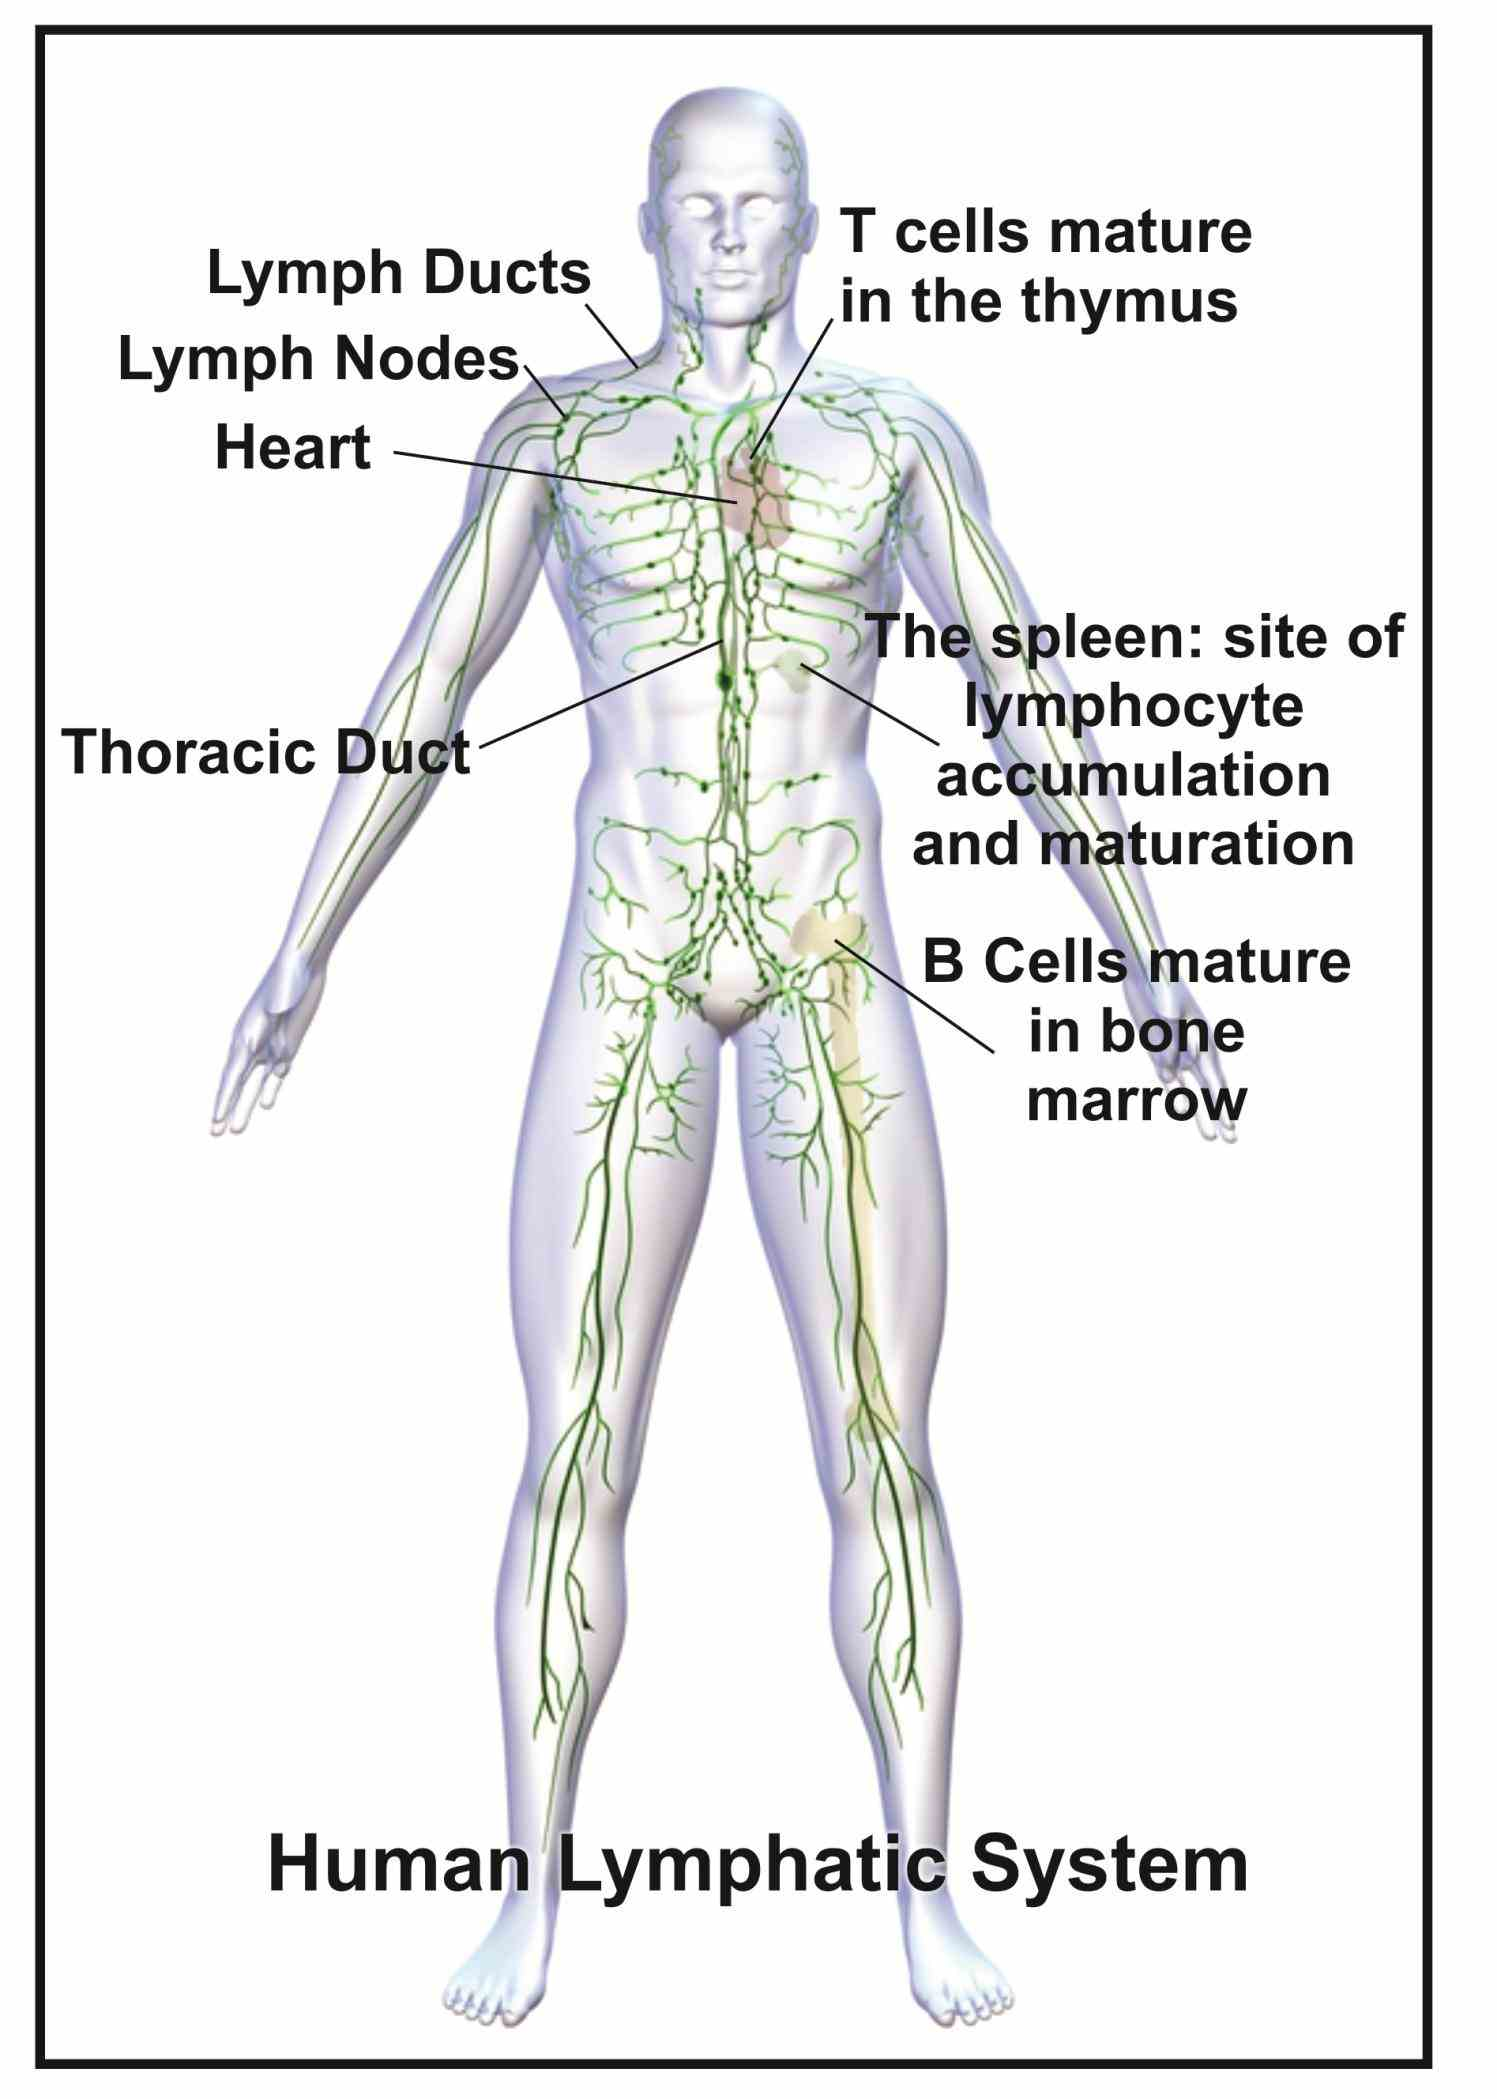 lymphatic system contains structures that help filter harmful substances from lymph derives interstitial fluid surrounds cells of body tissues